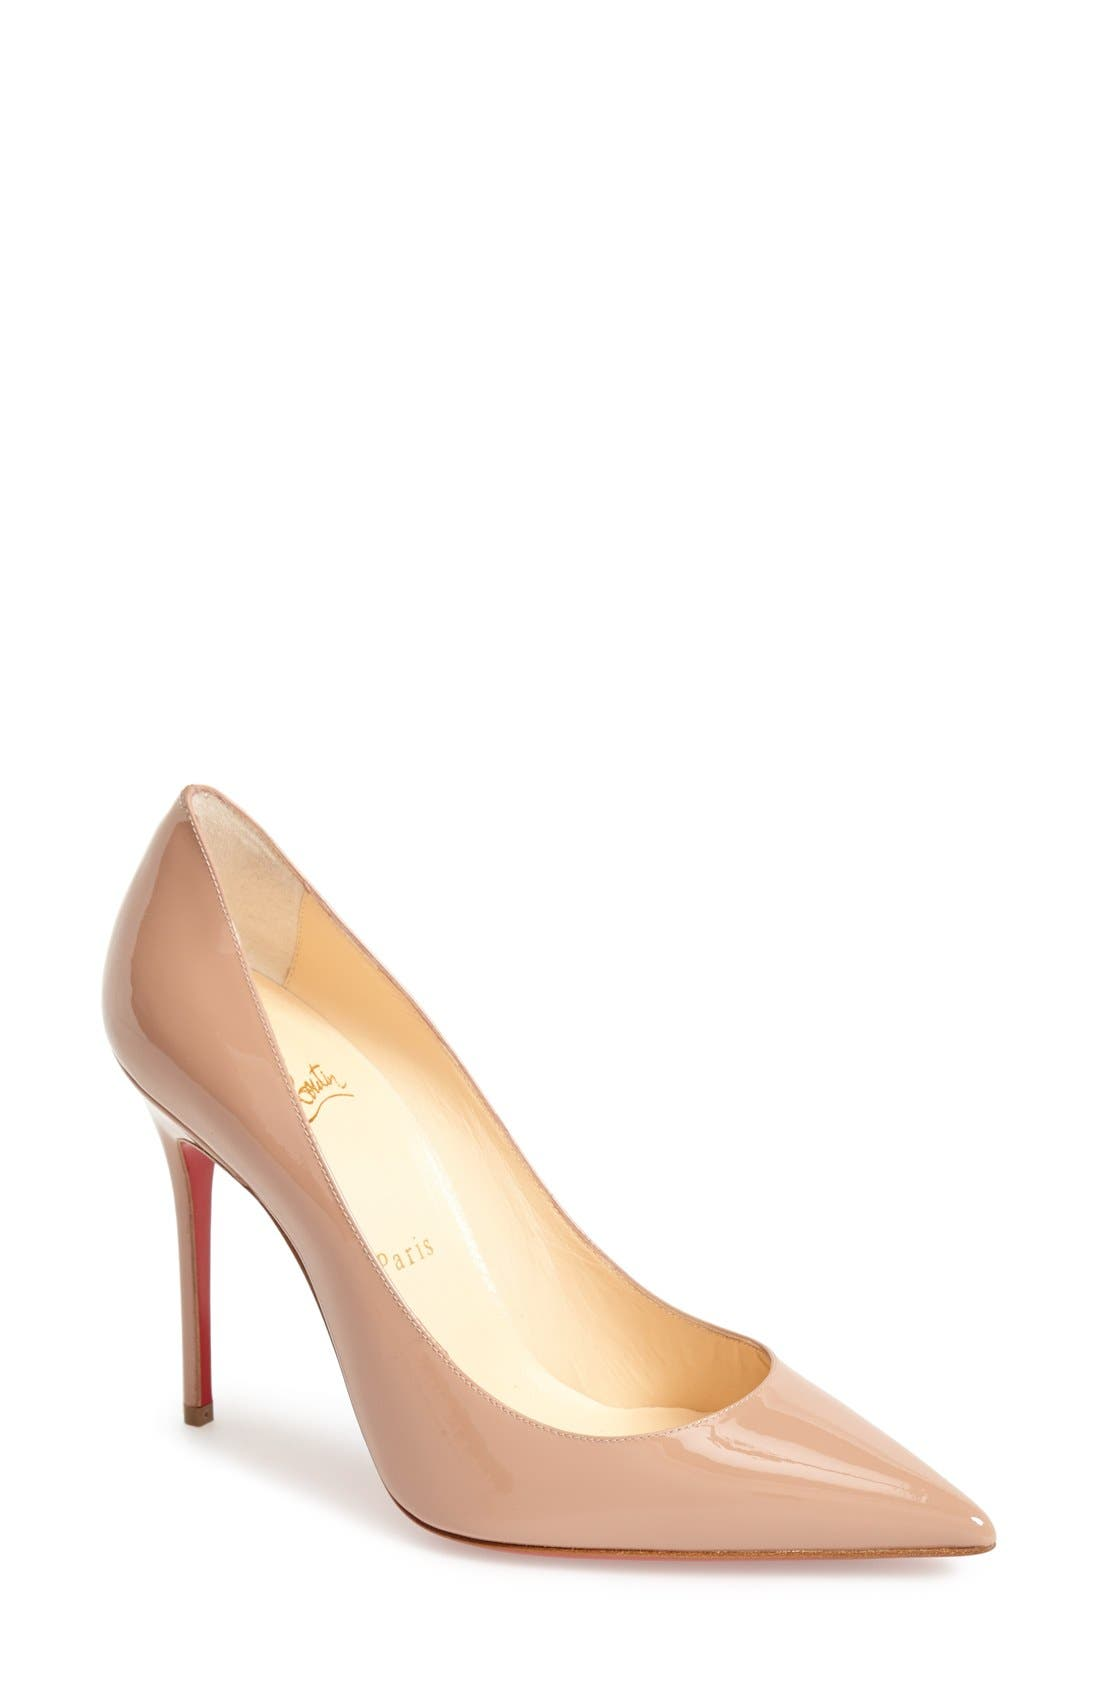 'Decollete' Pointy Toe Pump,                             Main thumbnail 1, color,                             NUDE